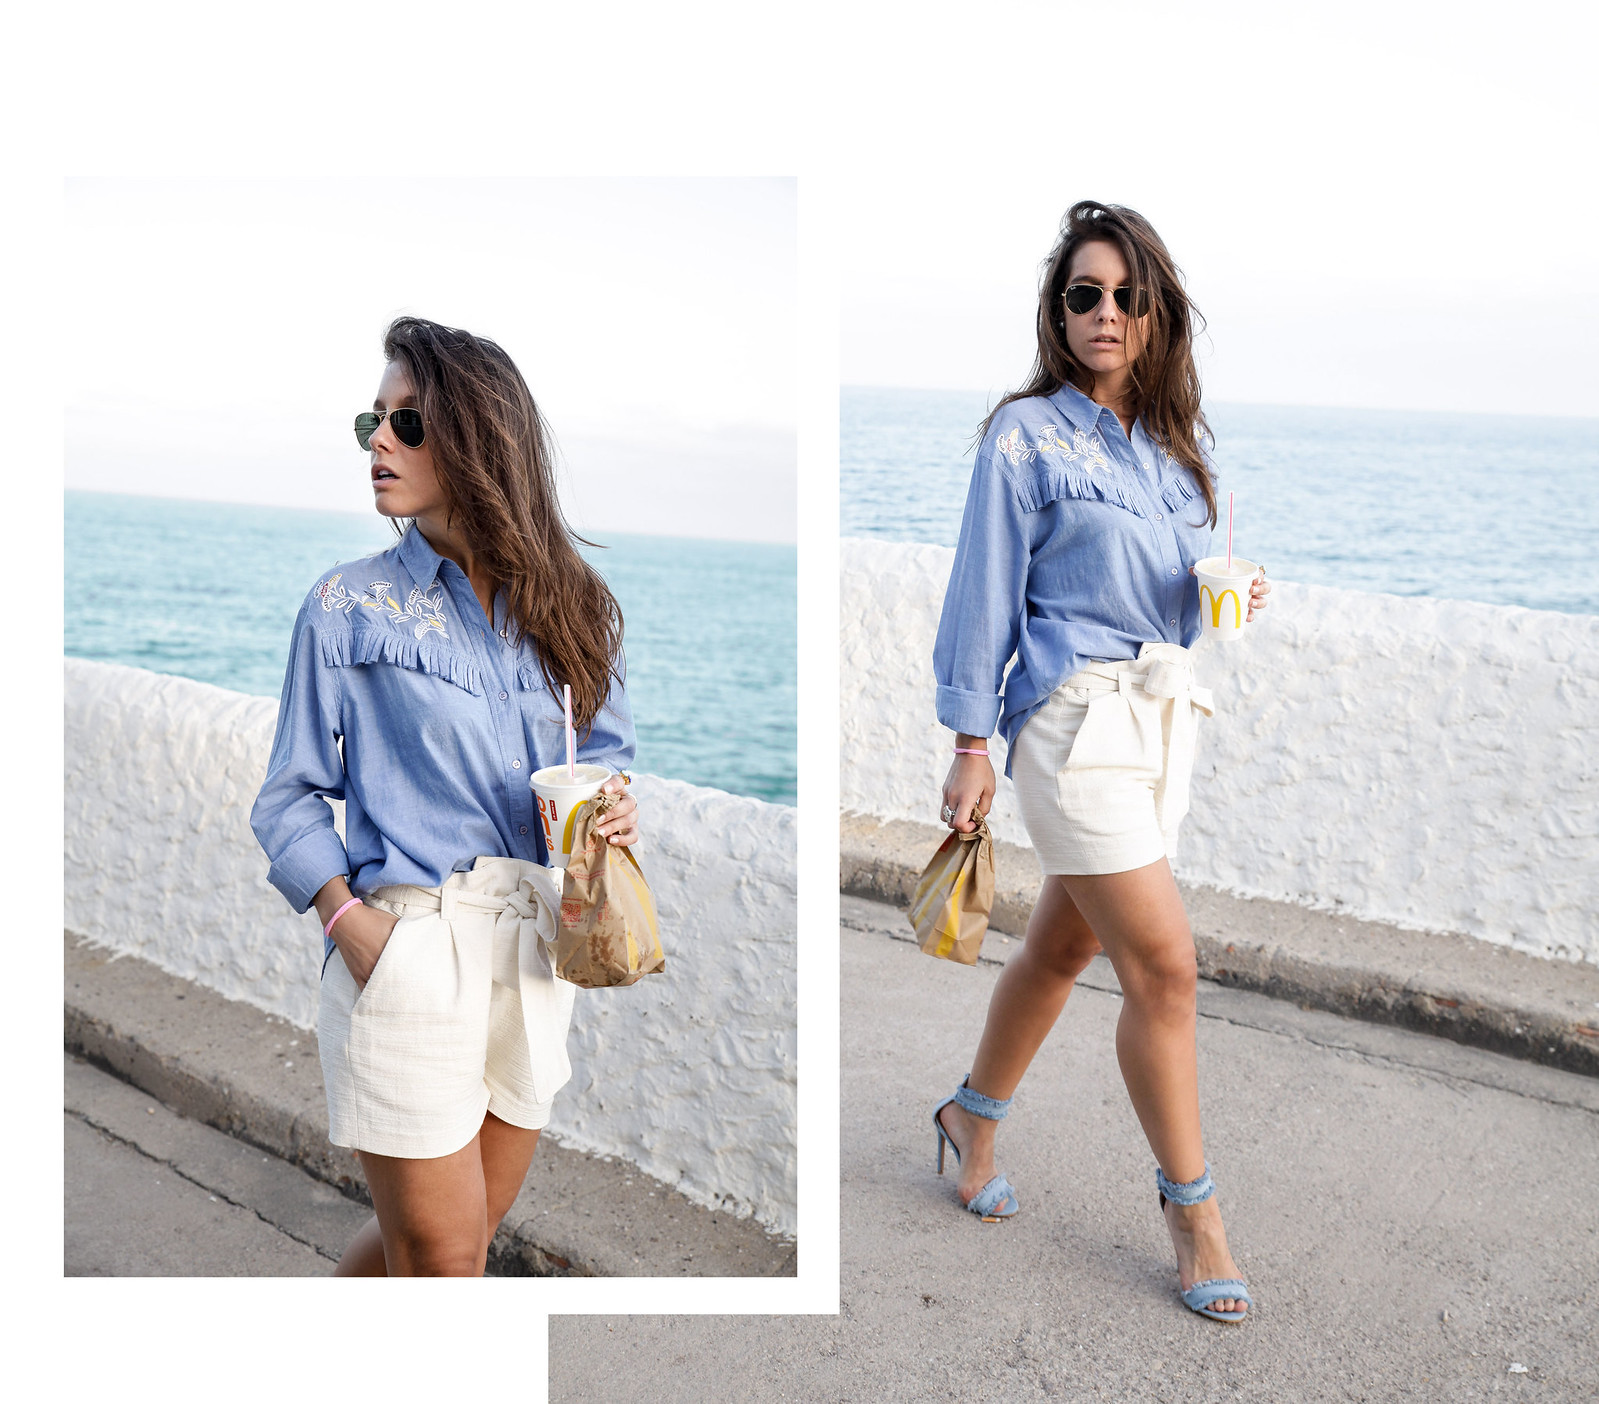 010_camisa_flecos_azul_mysundaymorning_fringed_shirt_fringed_theguestgirl_influencer_inspo_outft_summer_laura_santolaria_public_desire_denim_shoes_mc_donalds